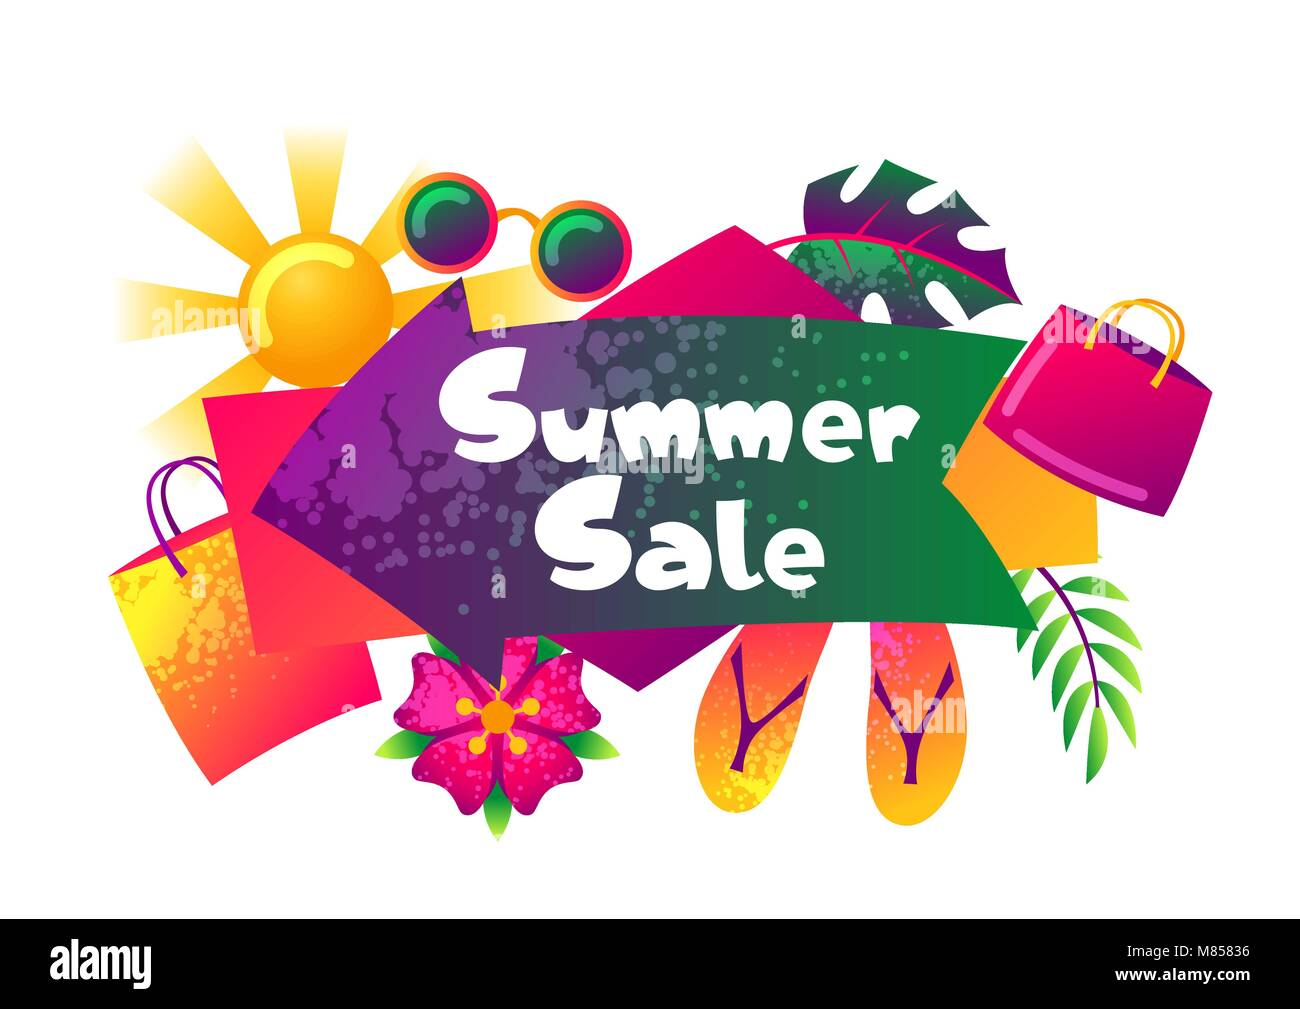 Summer sale banner with colorful elements. Sun, palm leaves and shopping bags - Stock Image